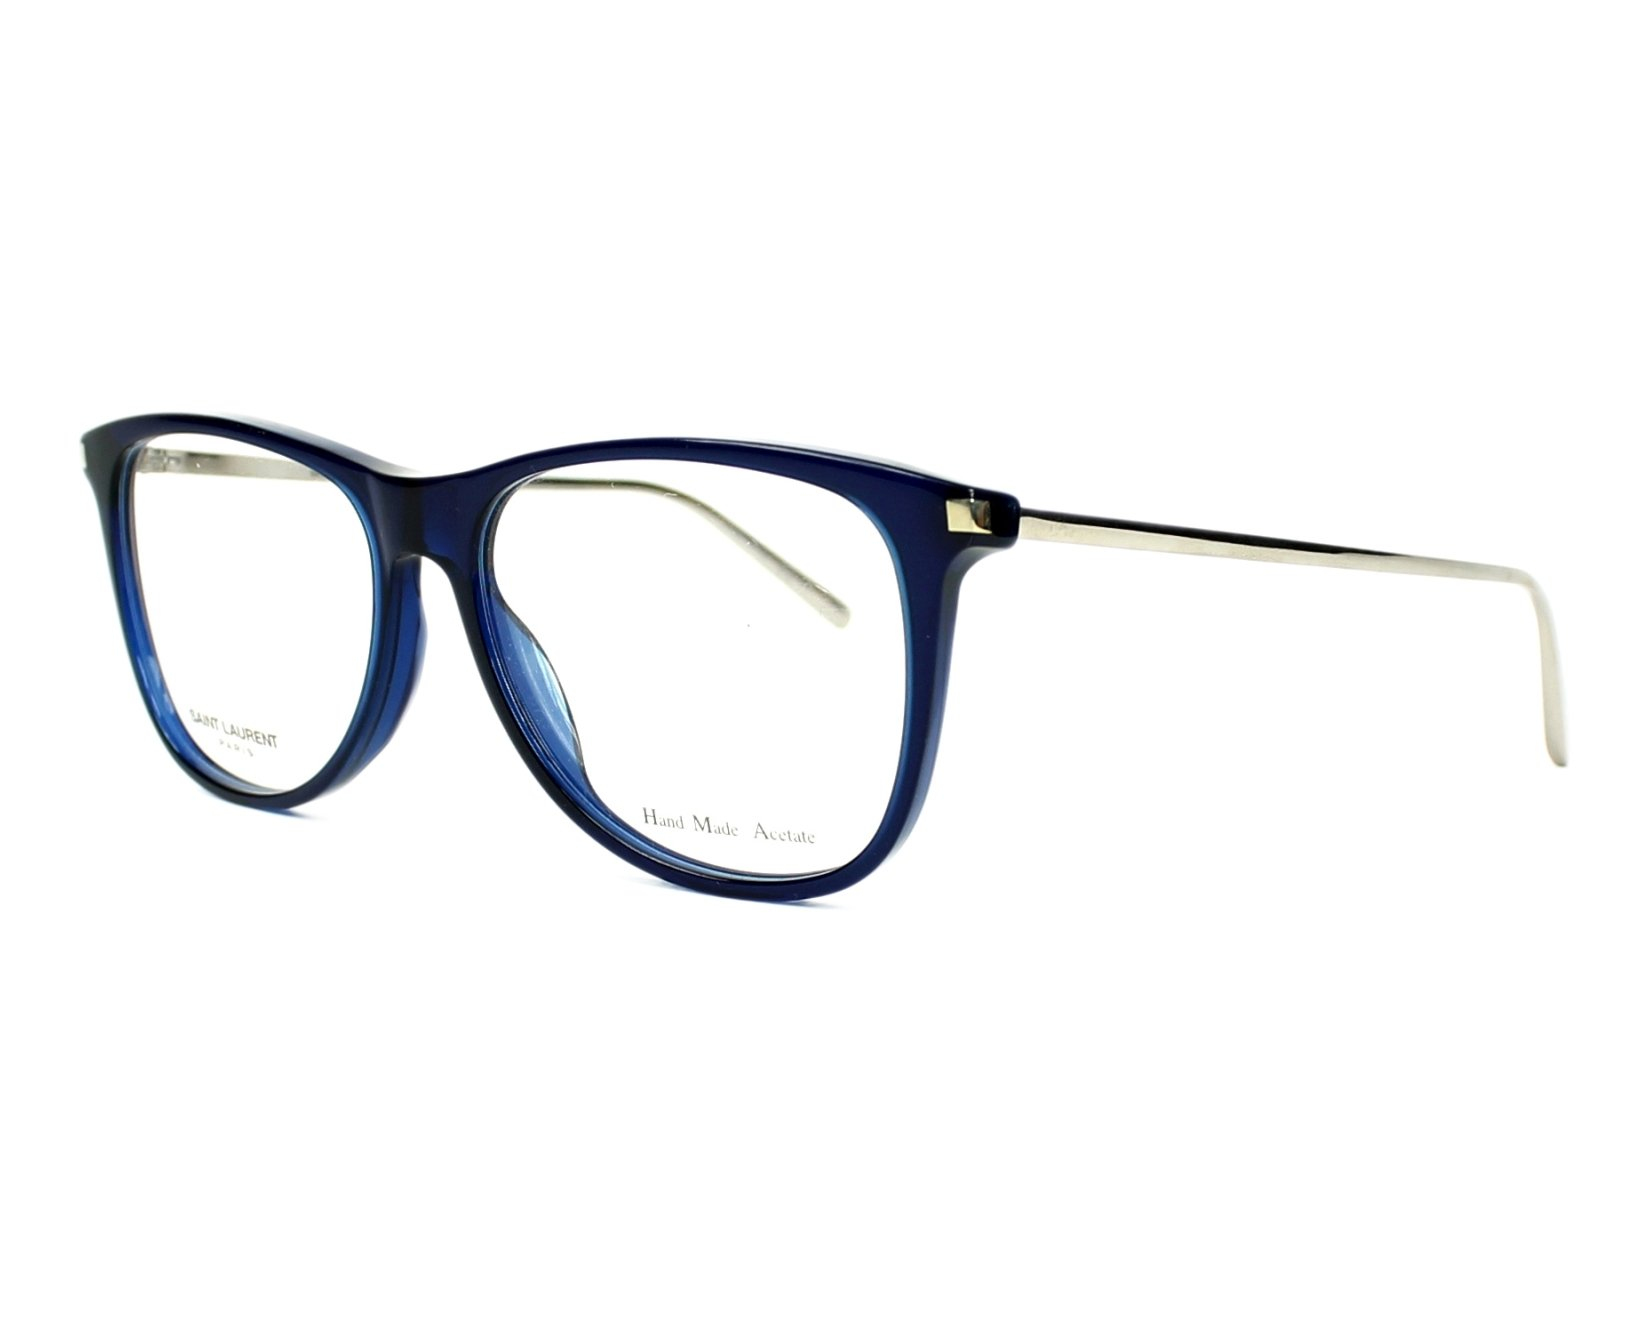 84fdc8b0e8 Yves Saint Laurent - Buy Yves Saint Laurent eyeglasses online at low ...